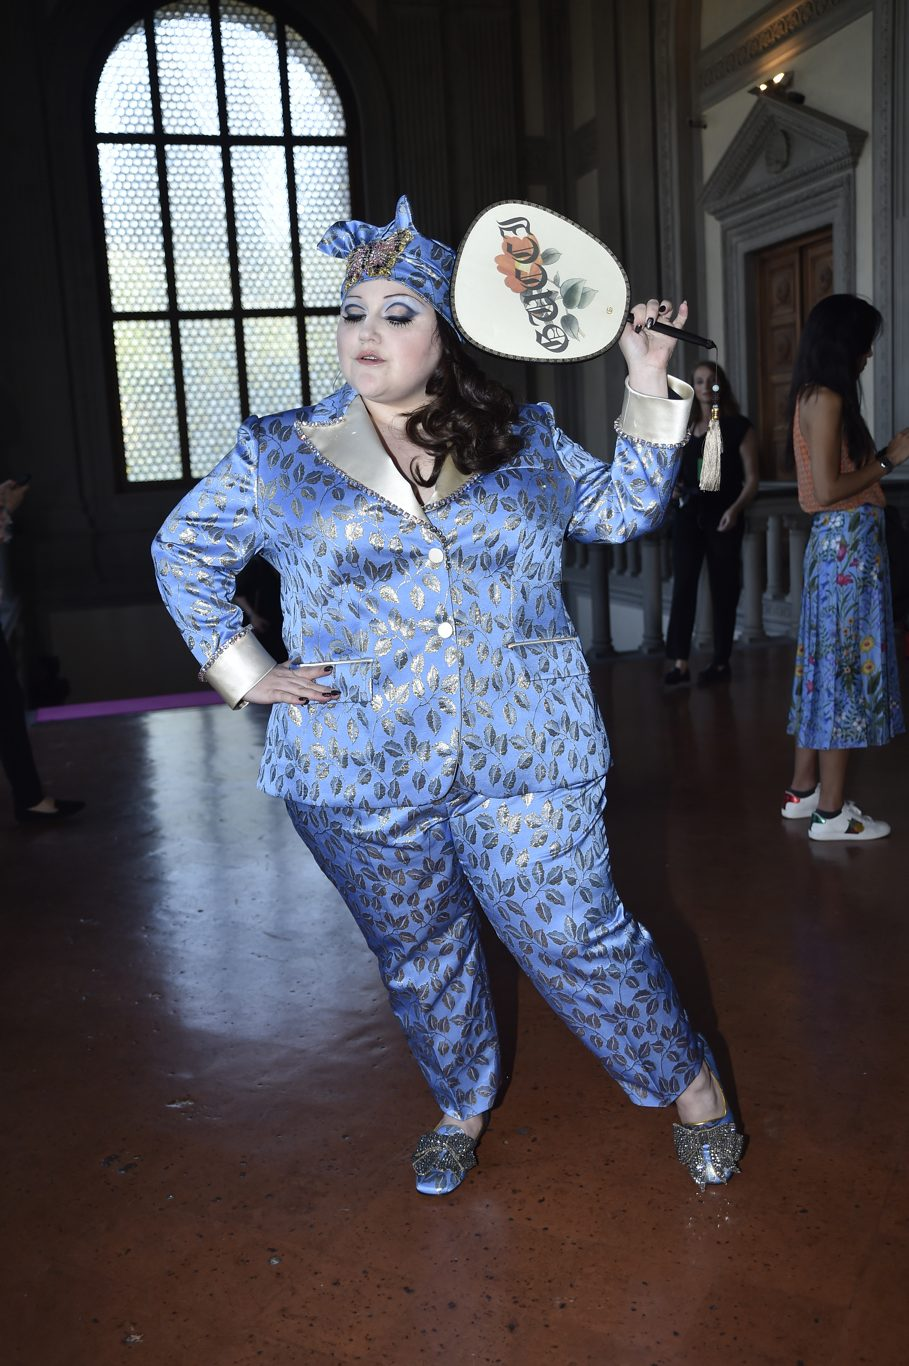 Beth Ditto at the Gucci Resort 2018 show in Florence